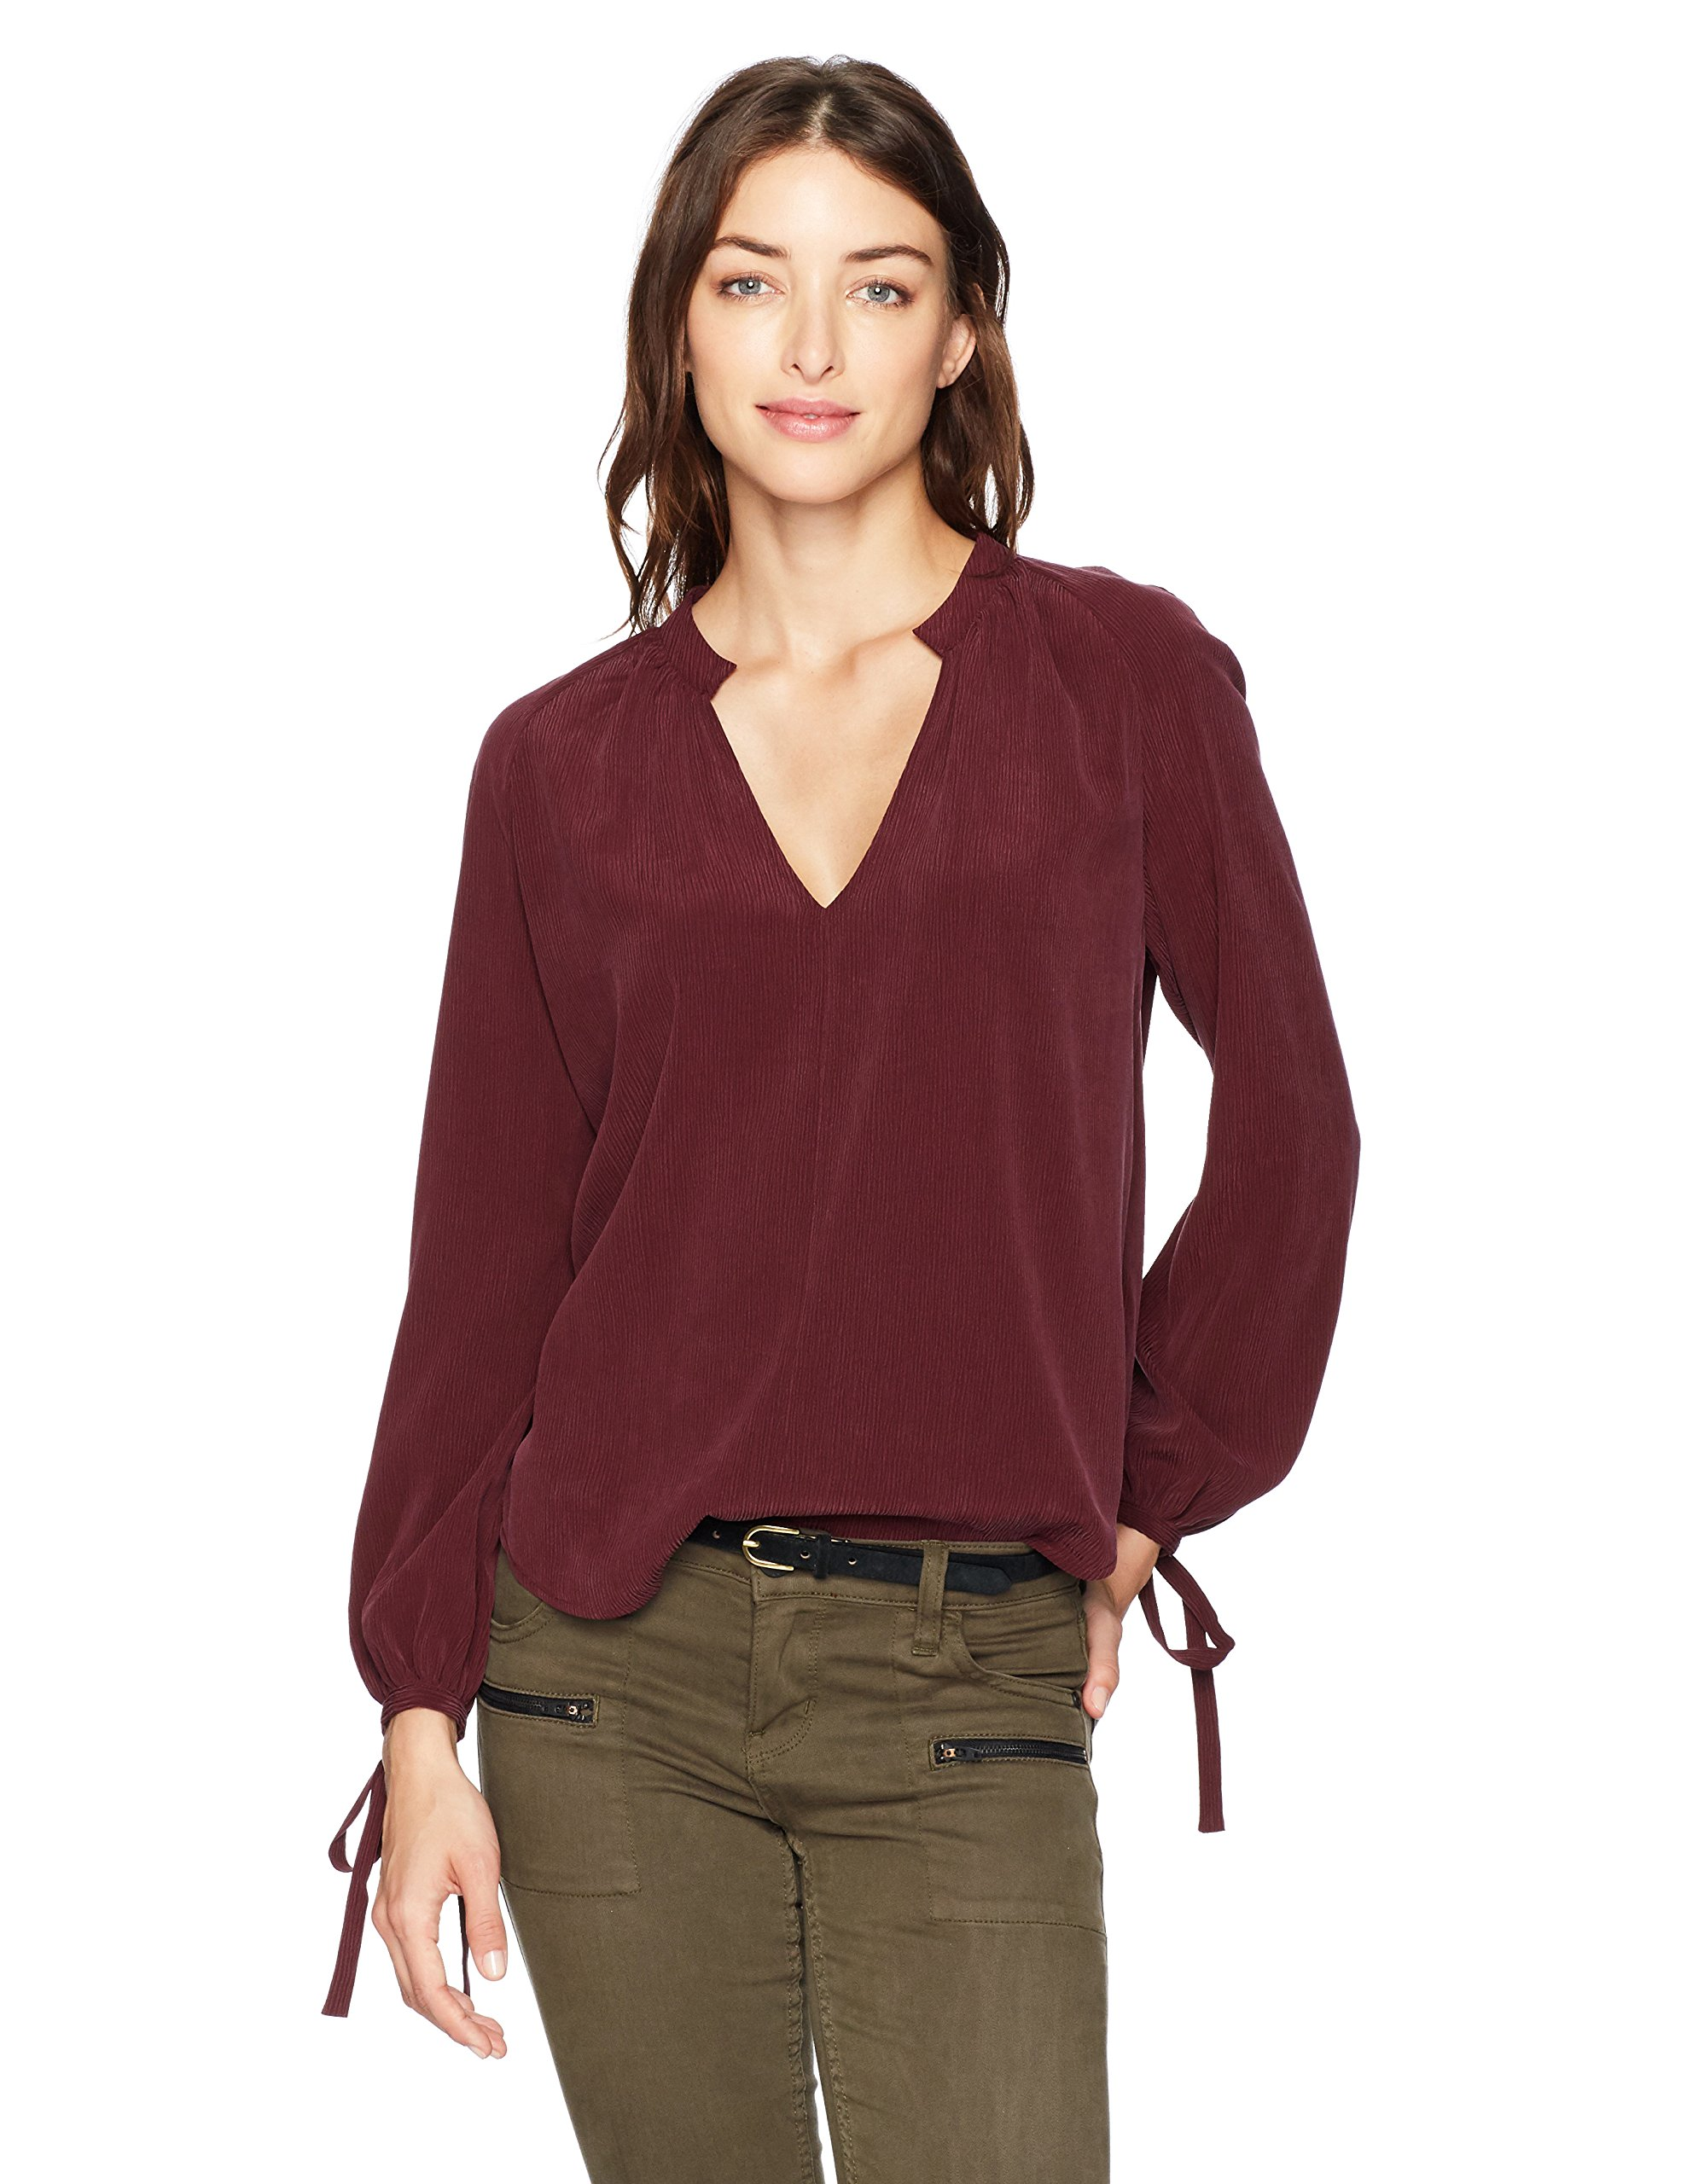 AG Adriano Goldschmied Women's Karina Top, Washed Deep Currant, M